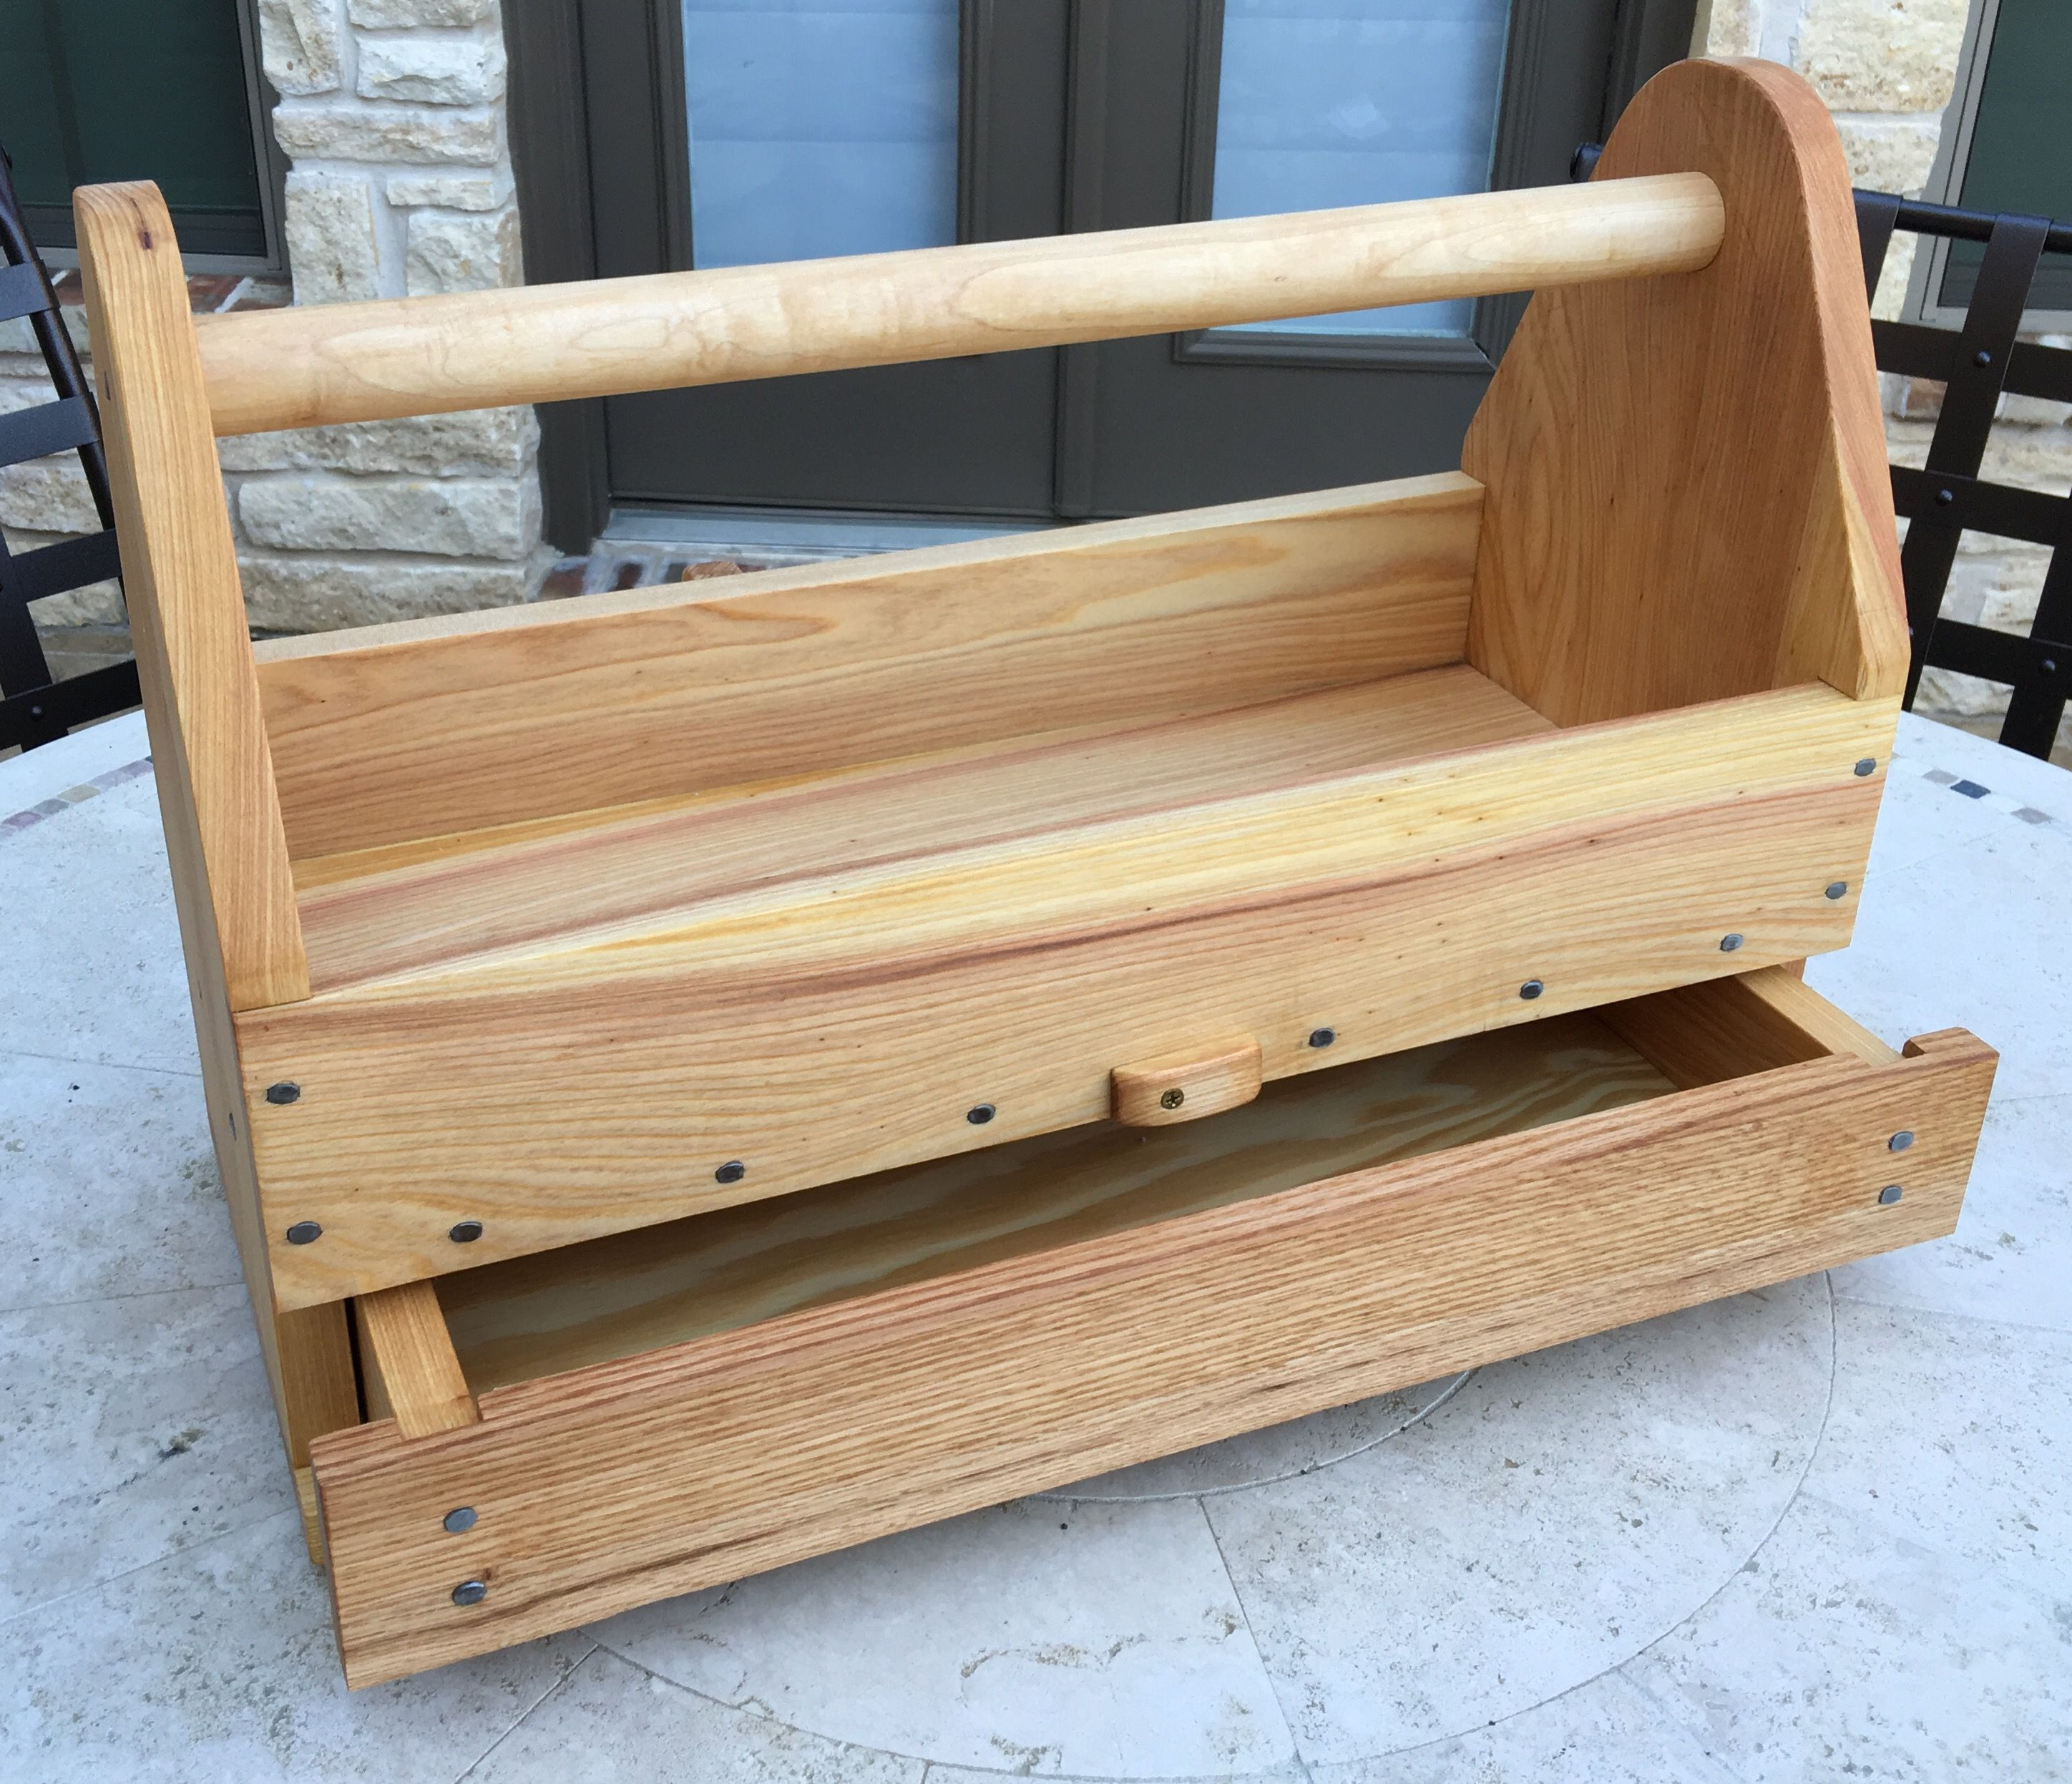 carpenter's tool box with pullout drawer. main frame is